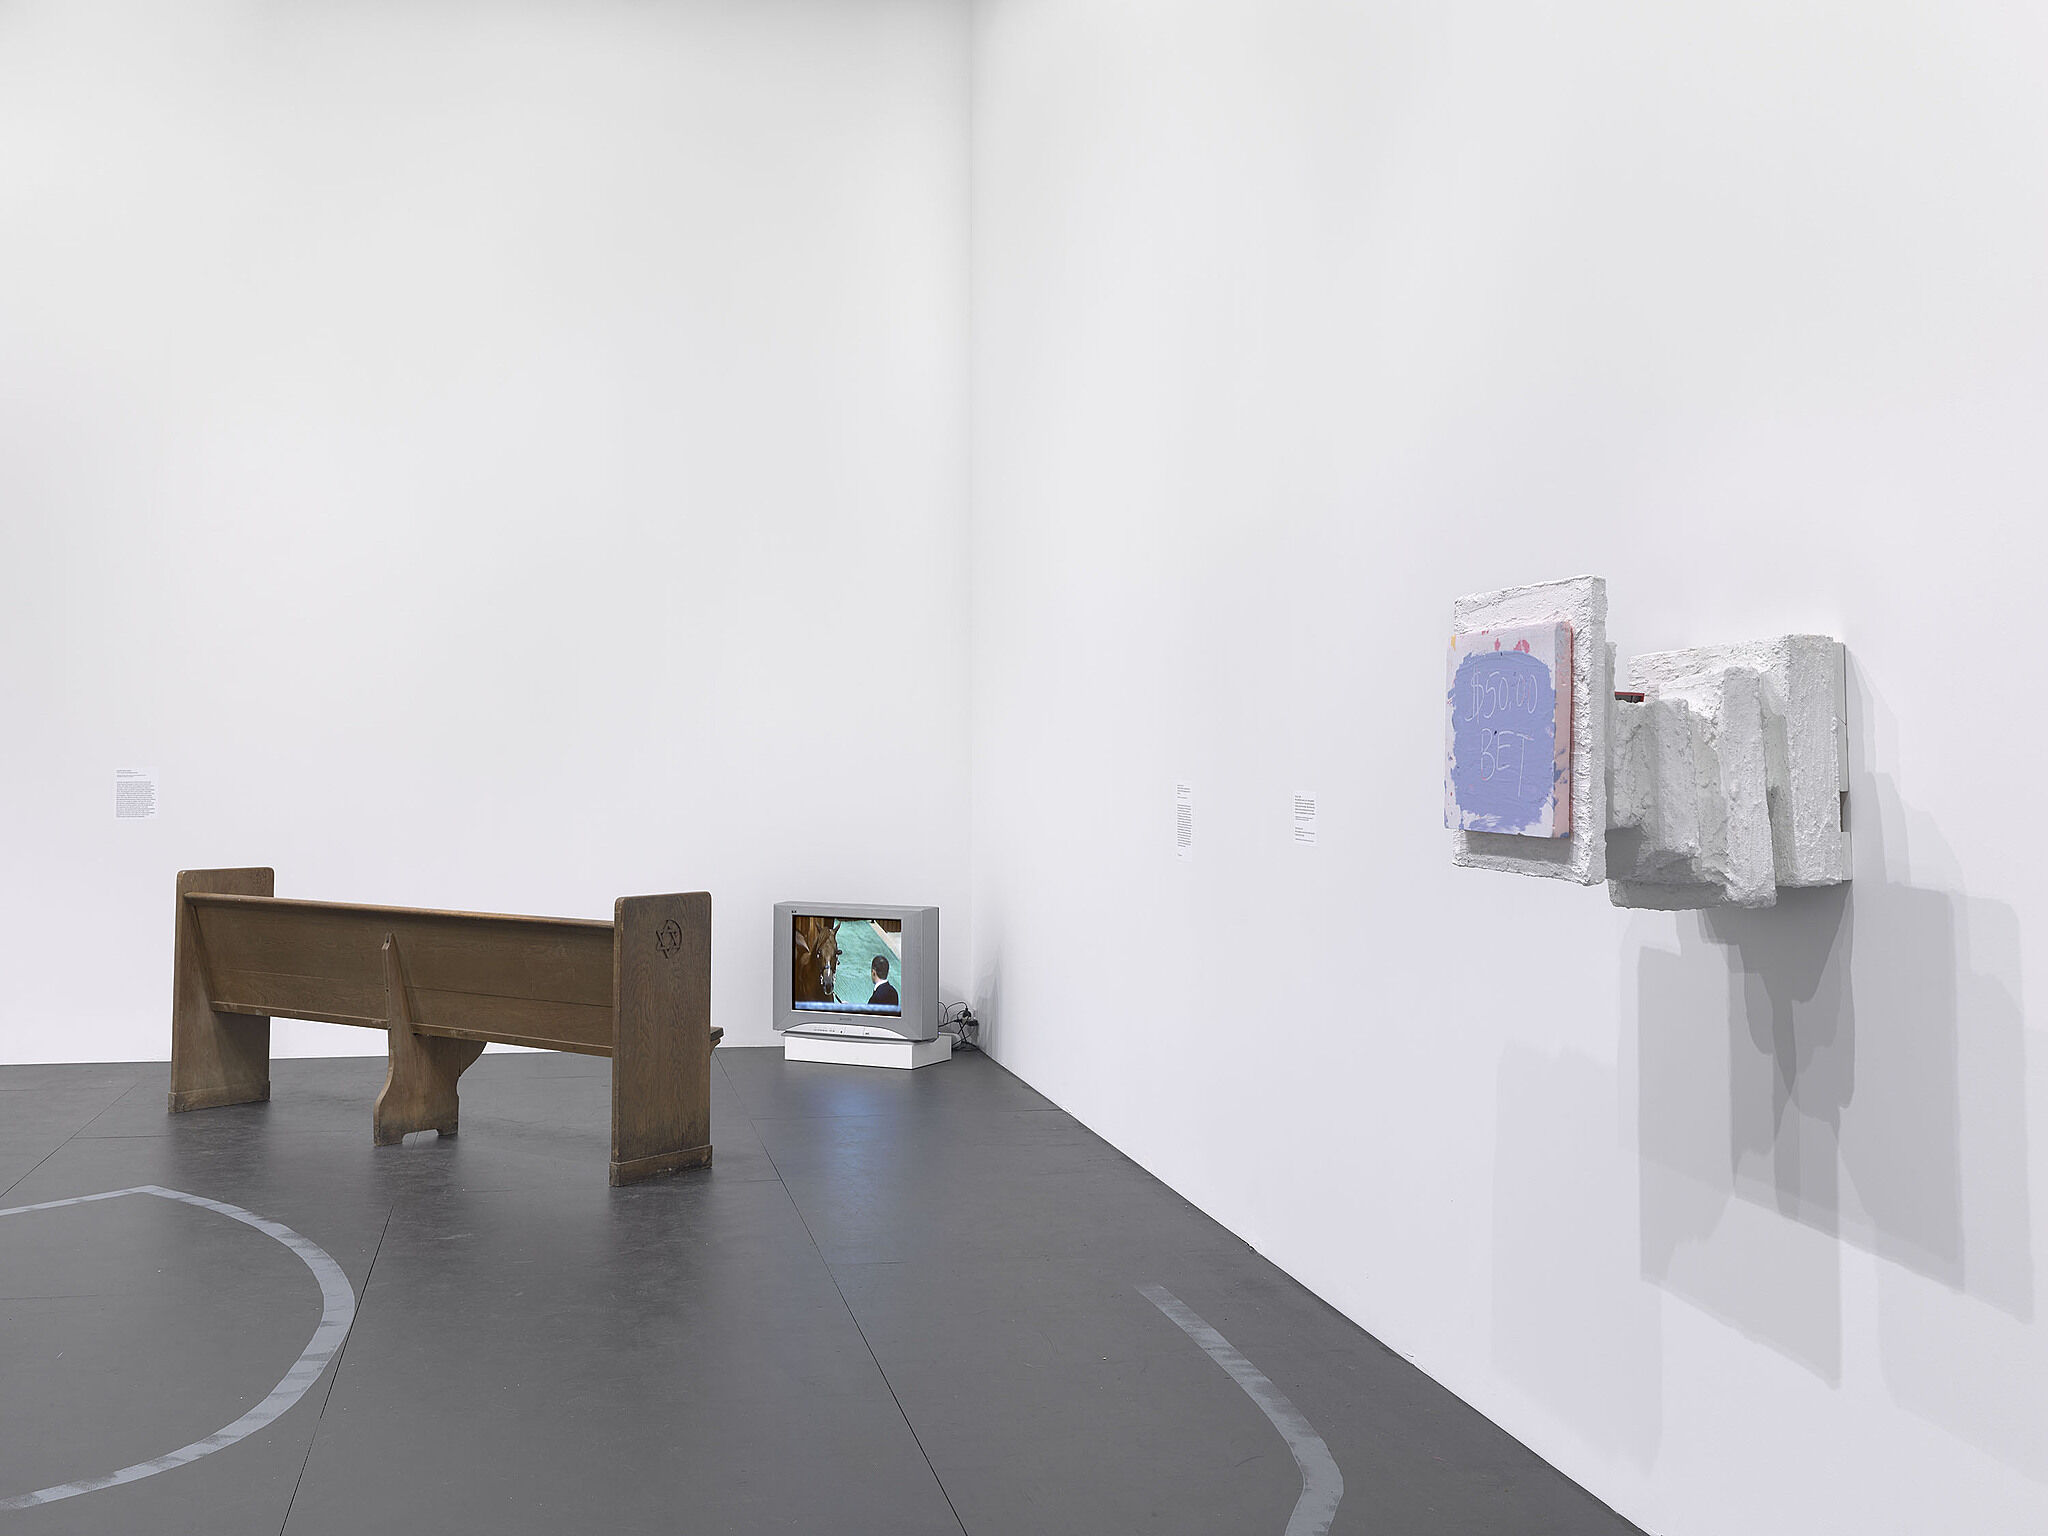 An image of the Whitney galleries with various sculptures and artworks on the walls.